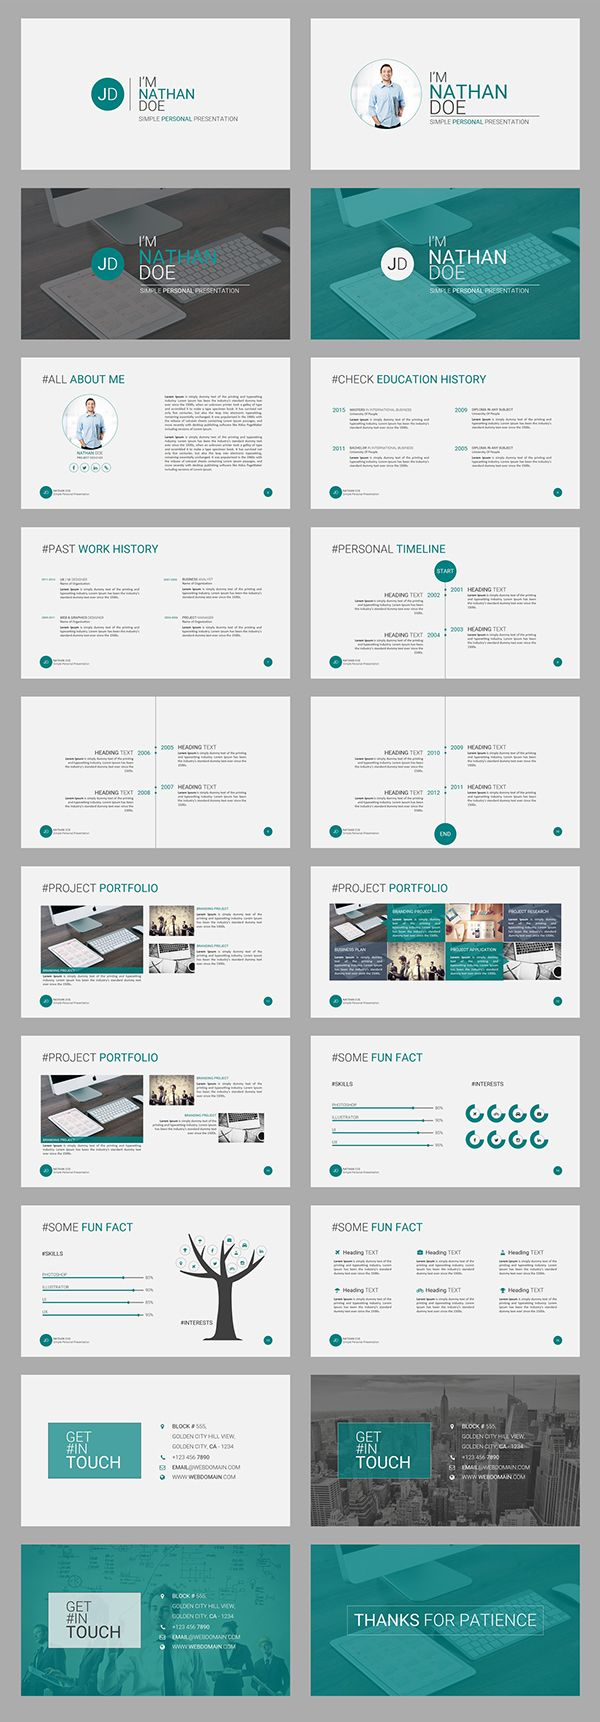 Jd Personal Cv Resume Powerpoint Presentation Template Is A Simple But Amazi Presentation Template Free Powerpoint Design Templates Ppt Template Design